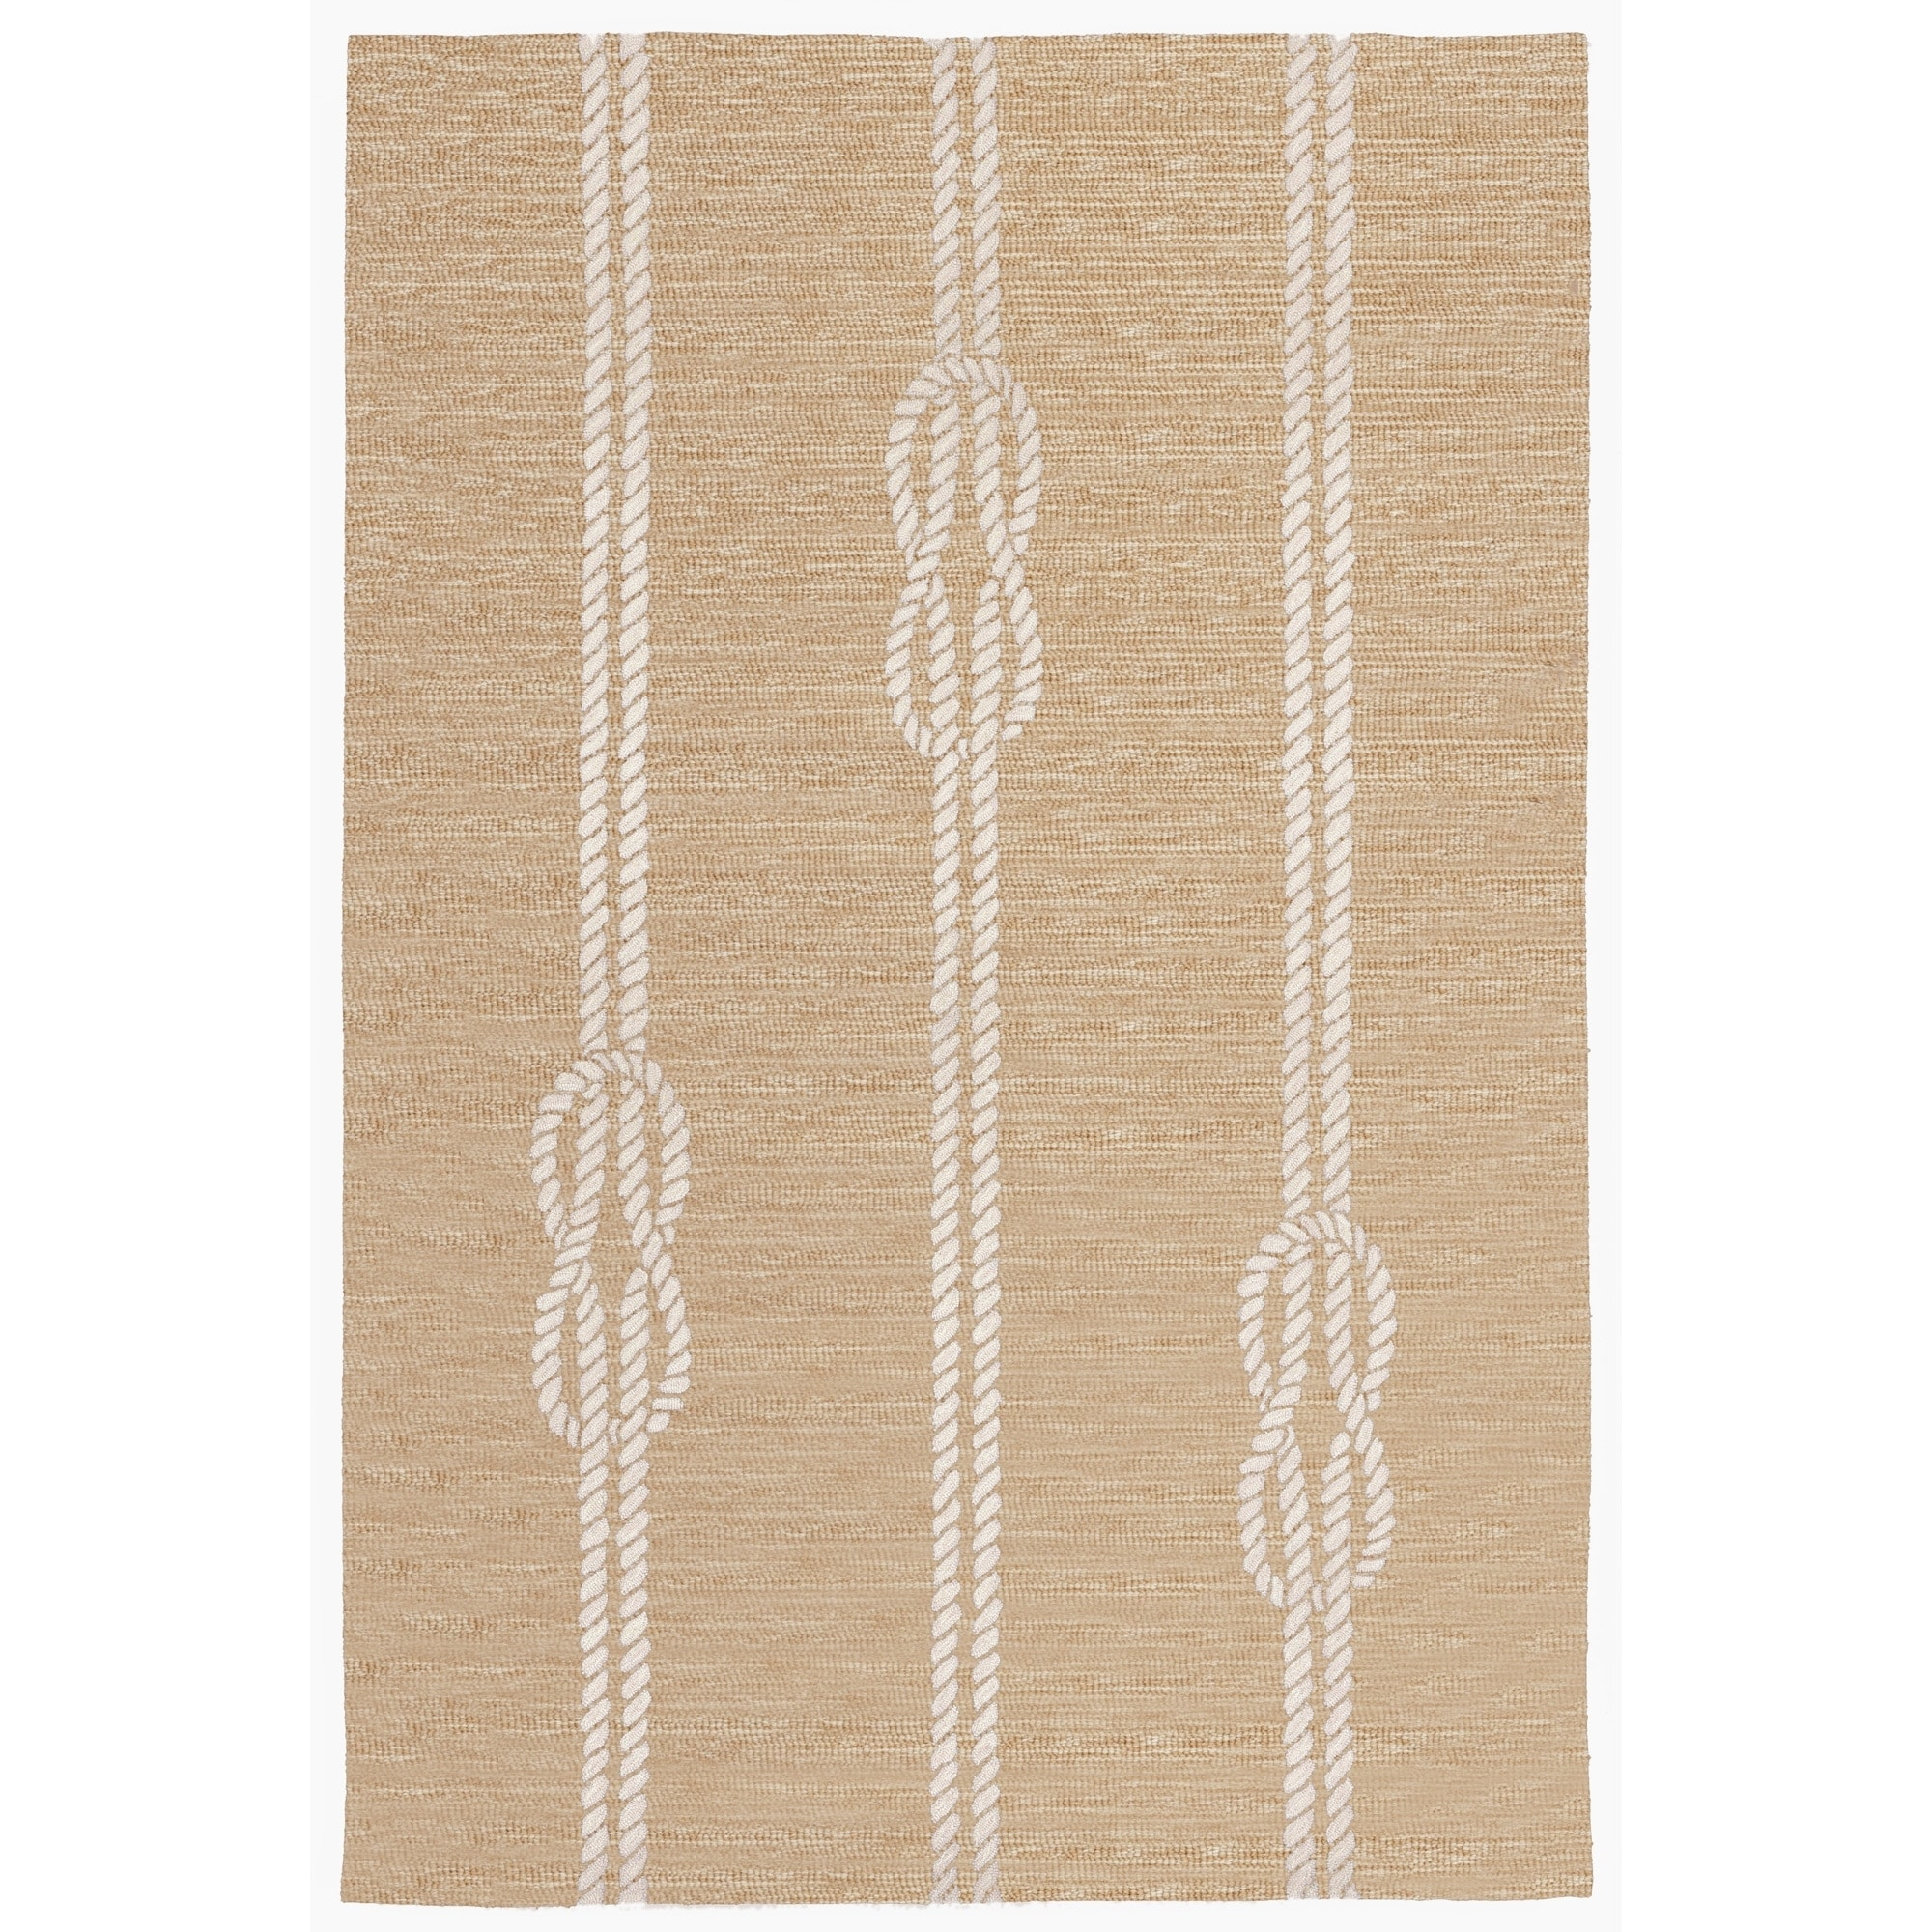 Nautical Twine Outdoor Rug 7 6 X 9 6